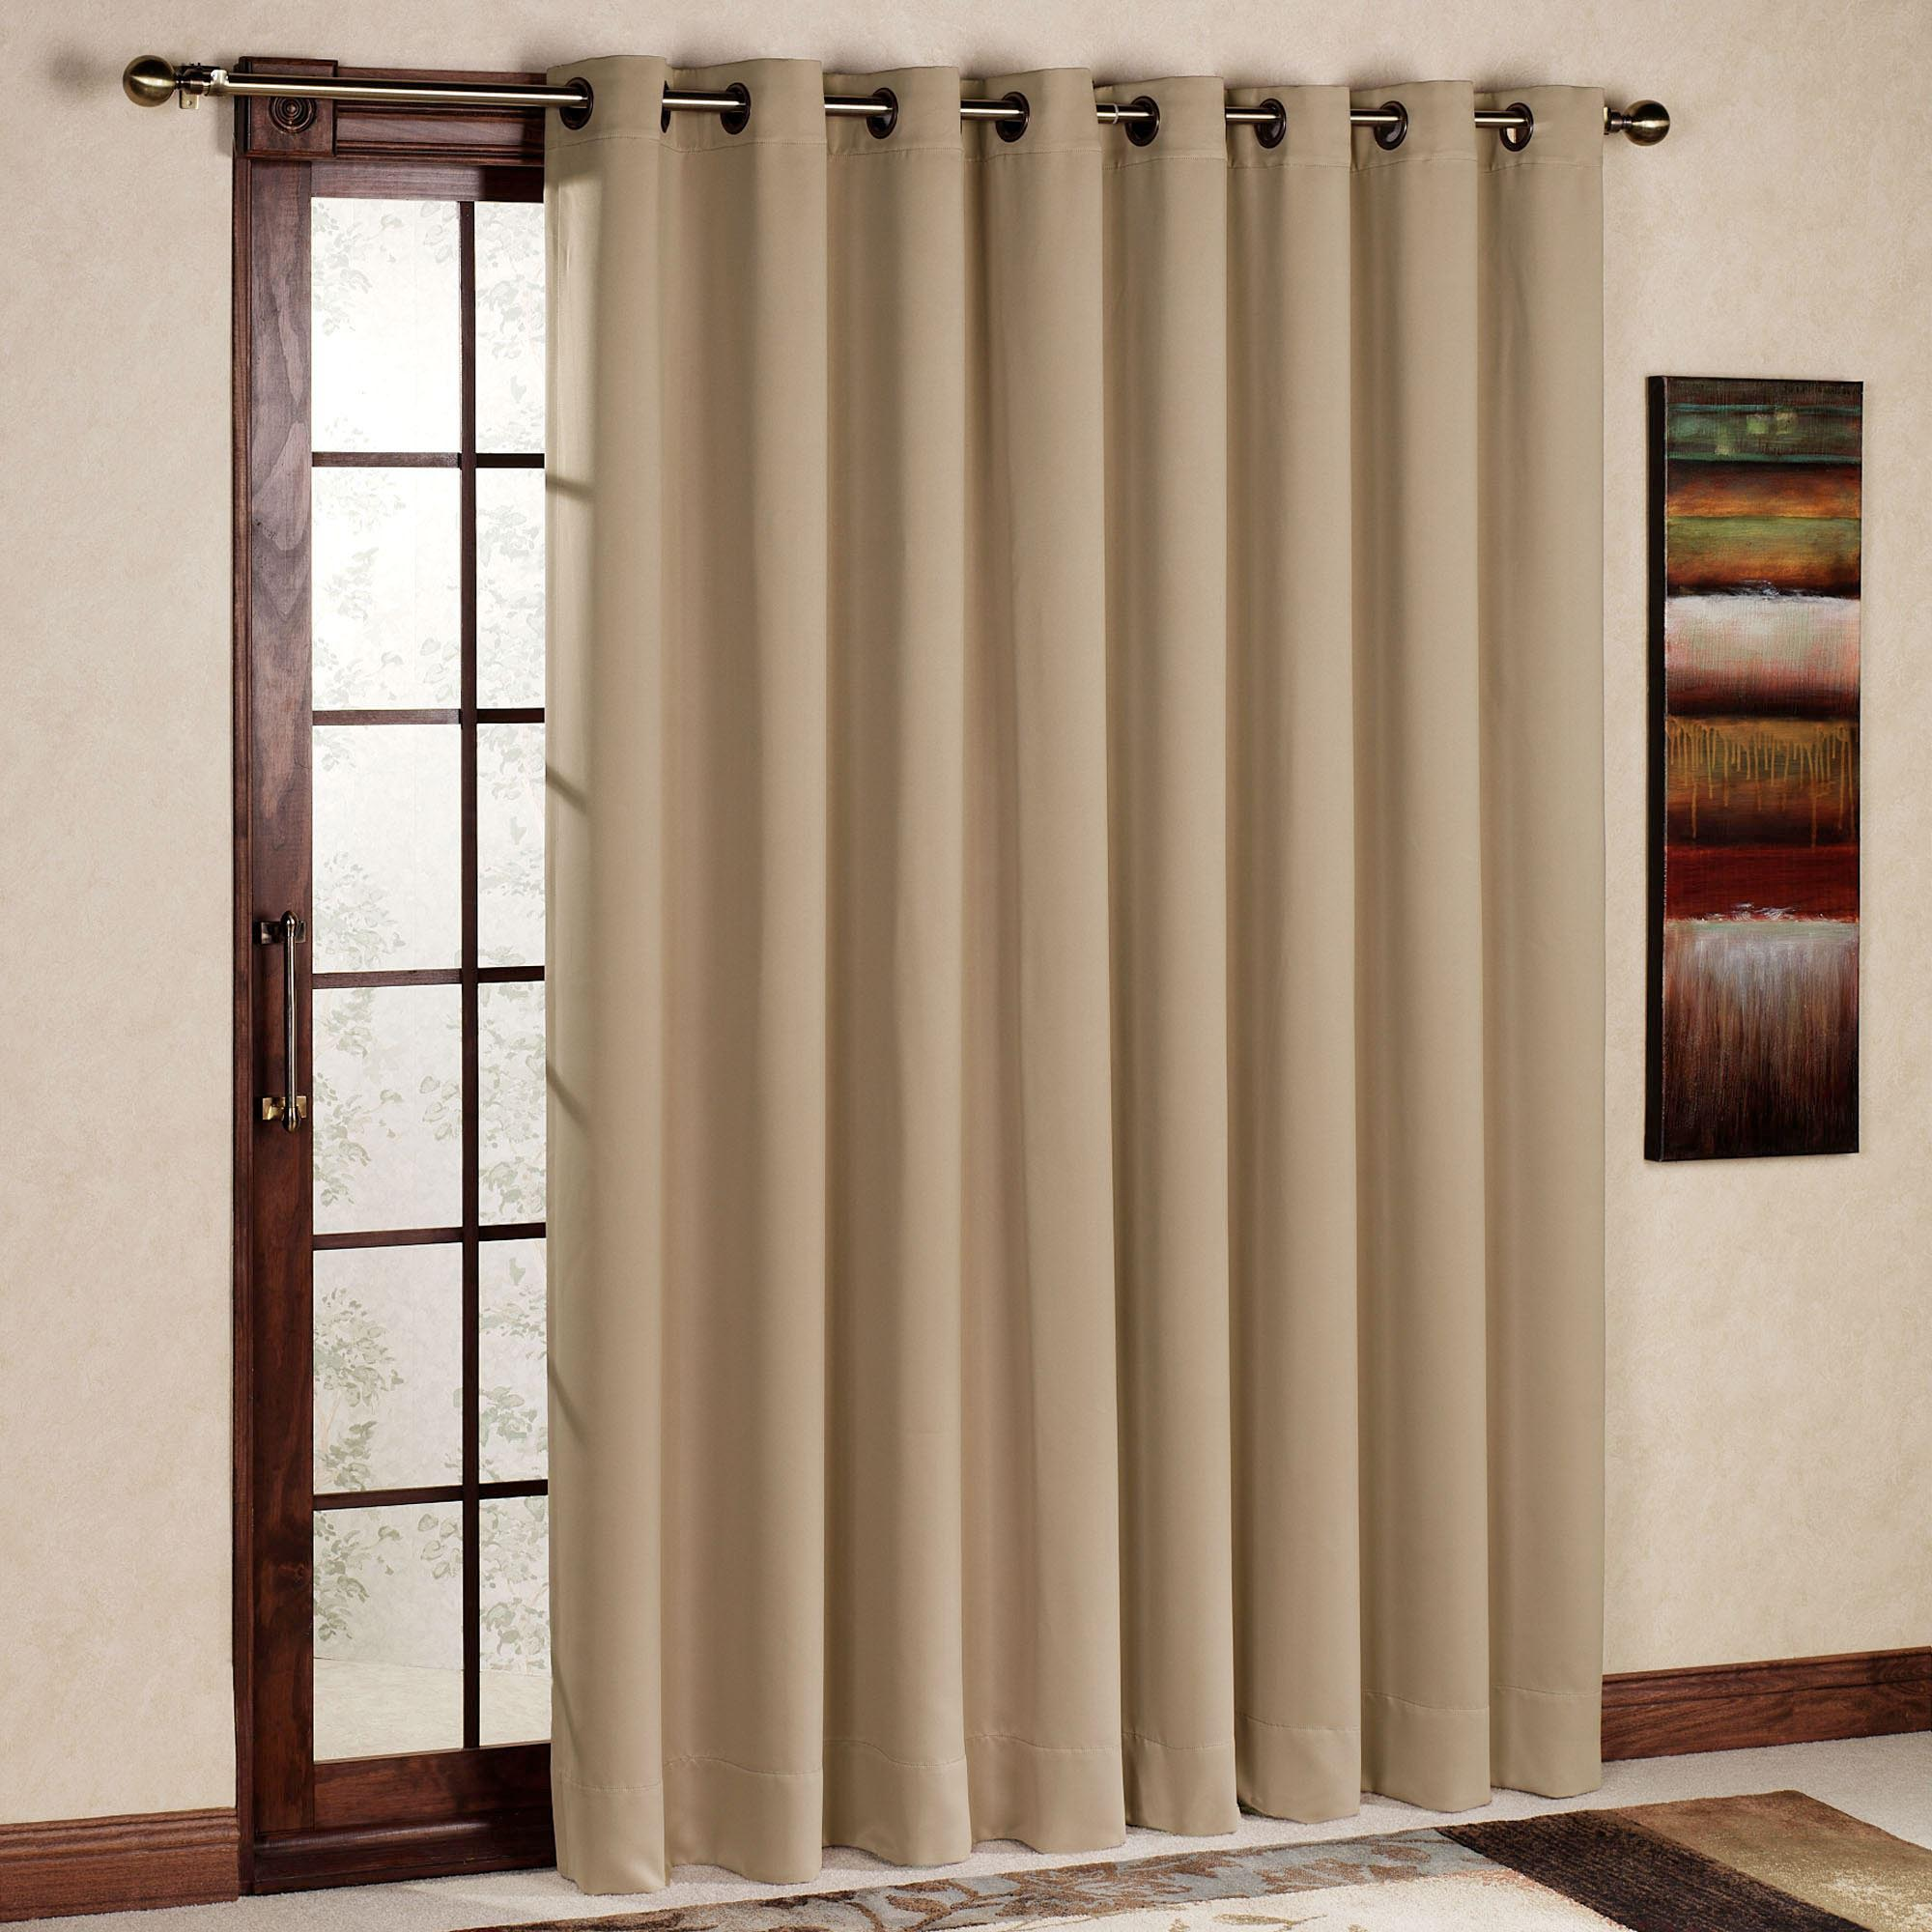 Correct Choice Of Patio Door Curtain Window Treatments Design Ideas